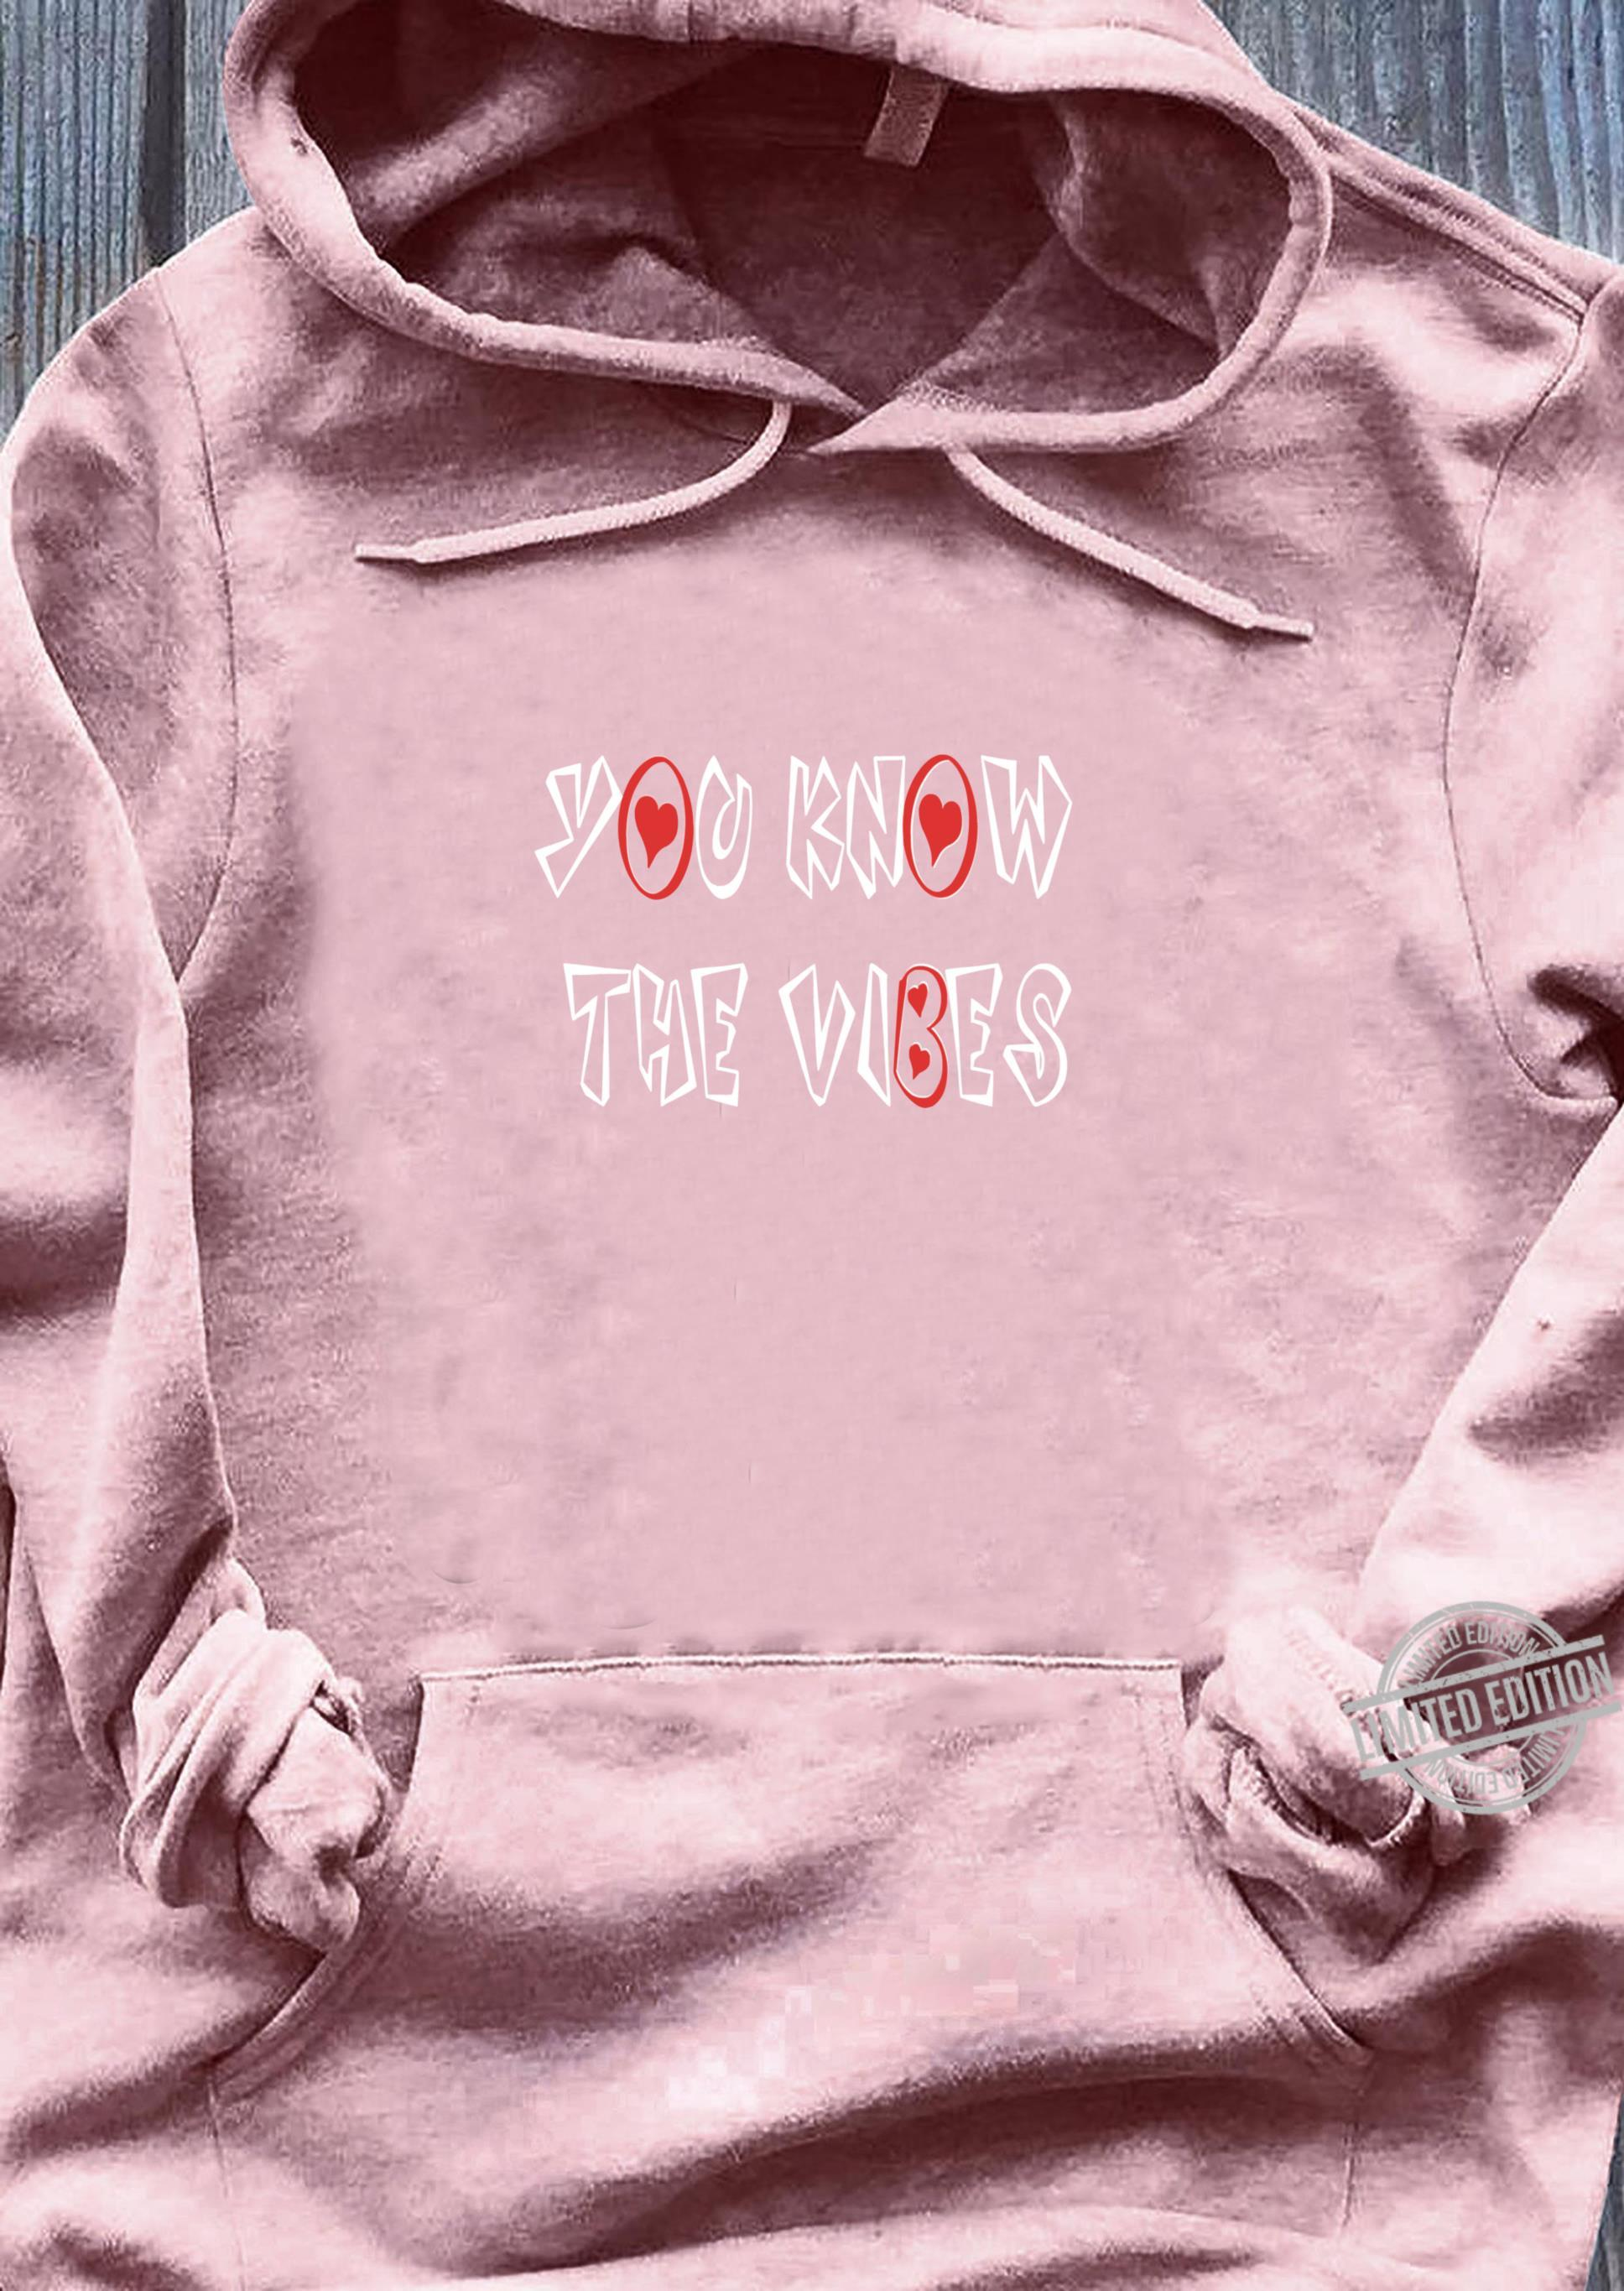 You know the vibes valentine's day matching couples set Shirt sweater